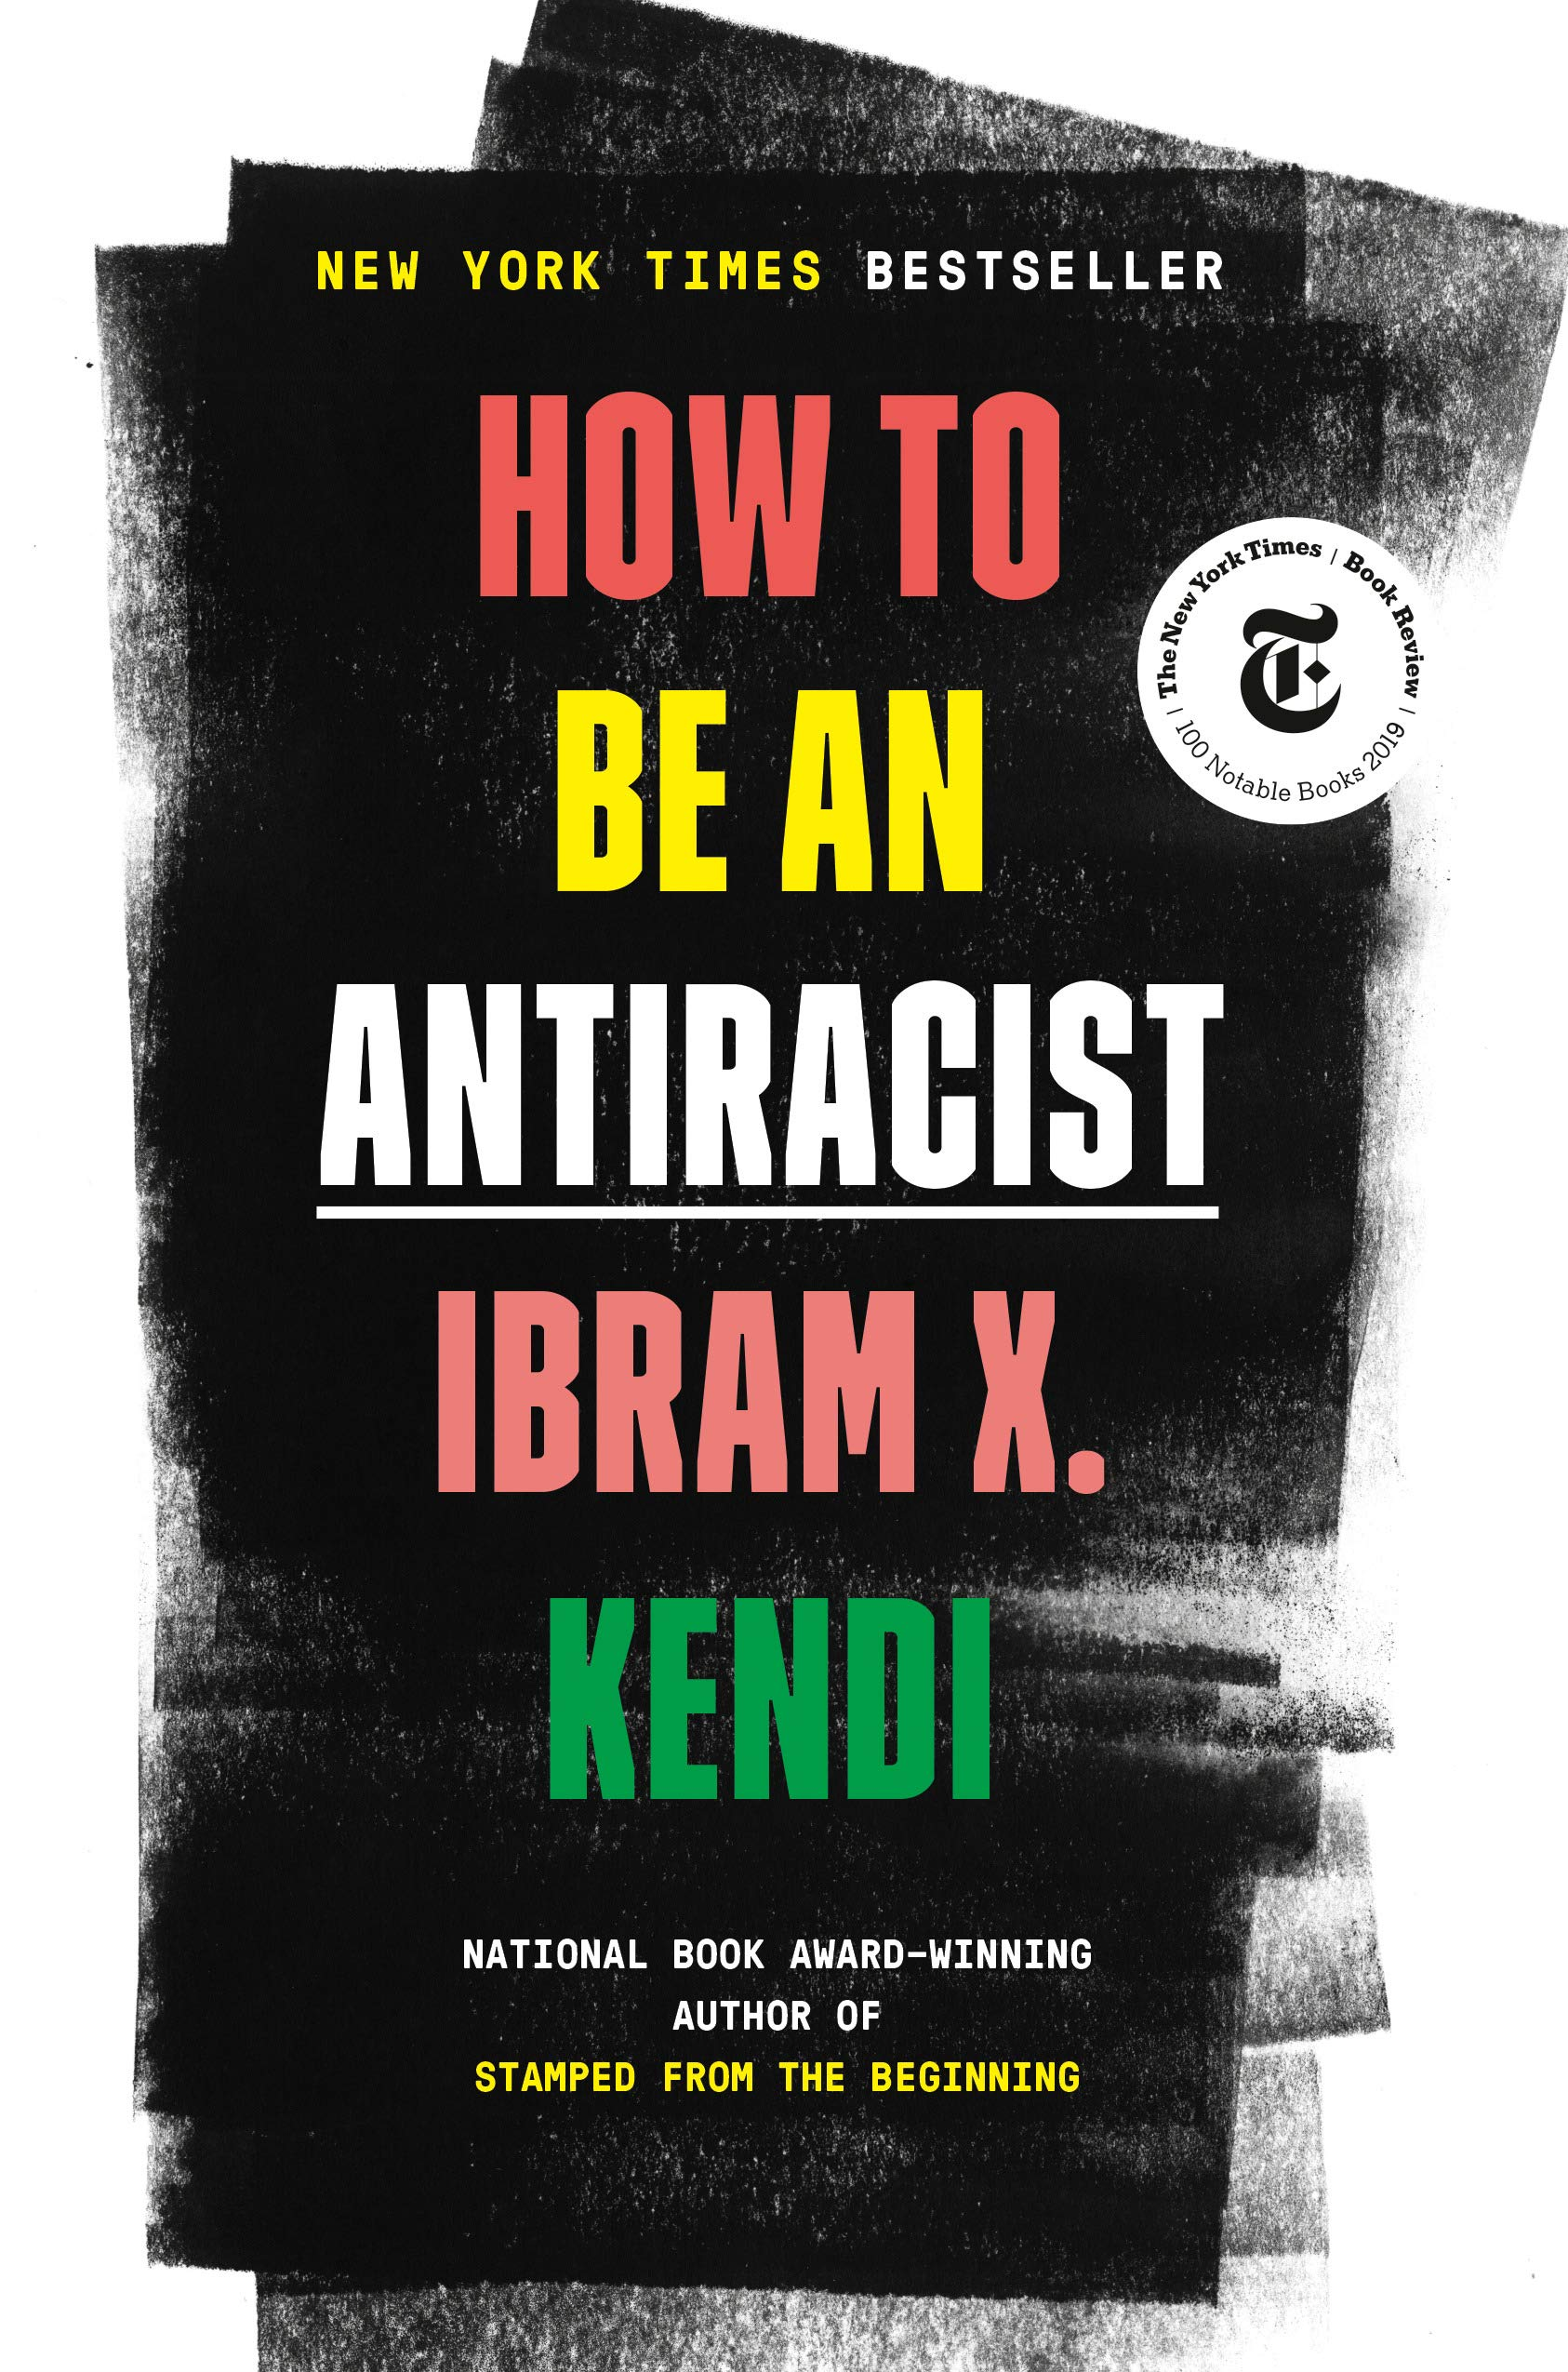 'How To Be An Antiracist' by Ibram X. Kendi